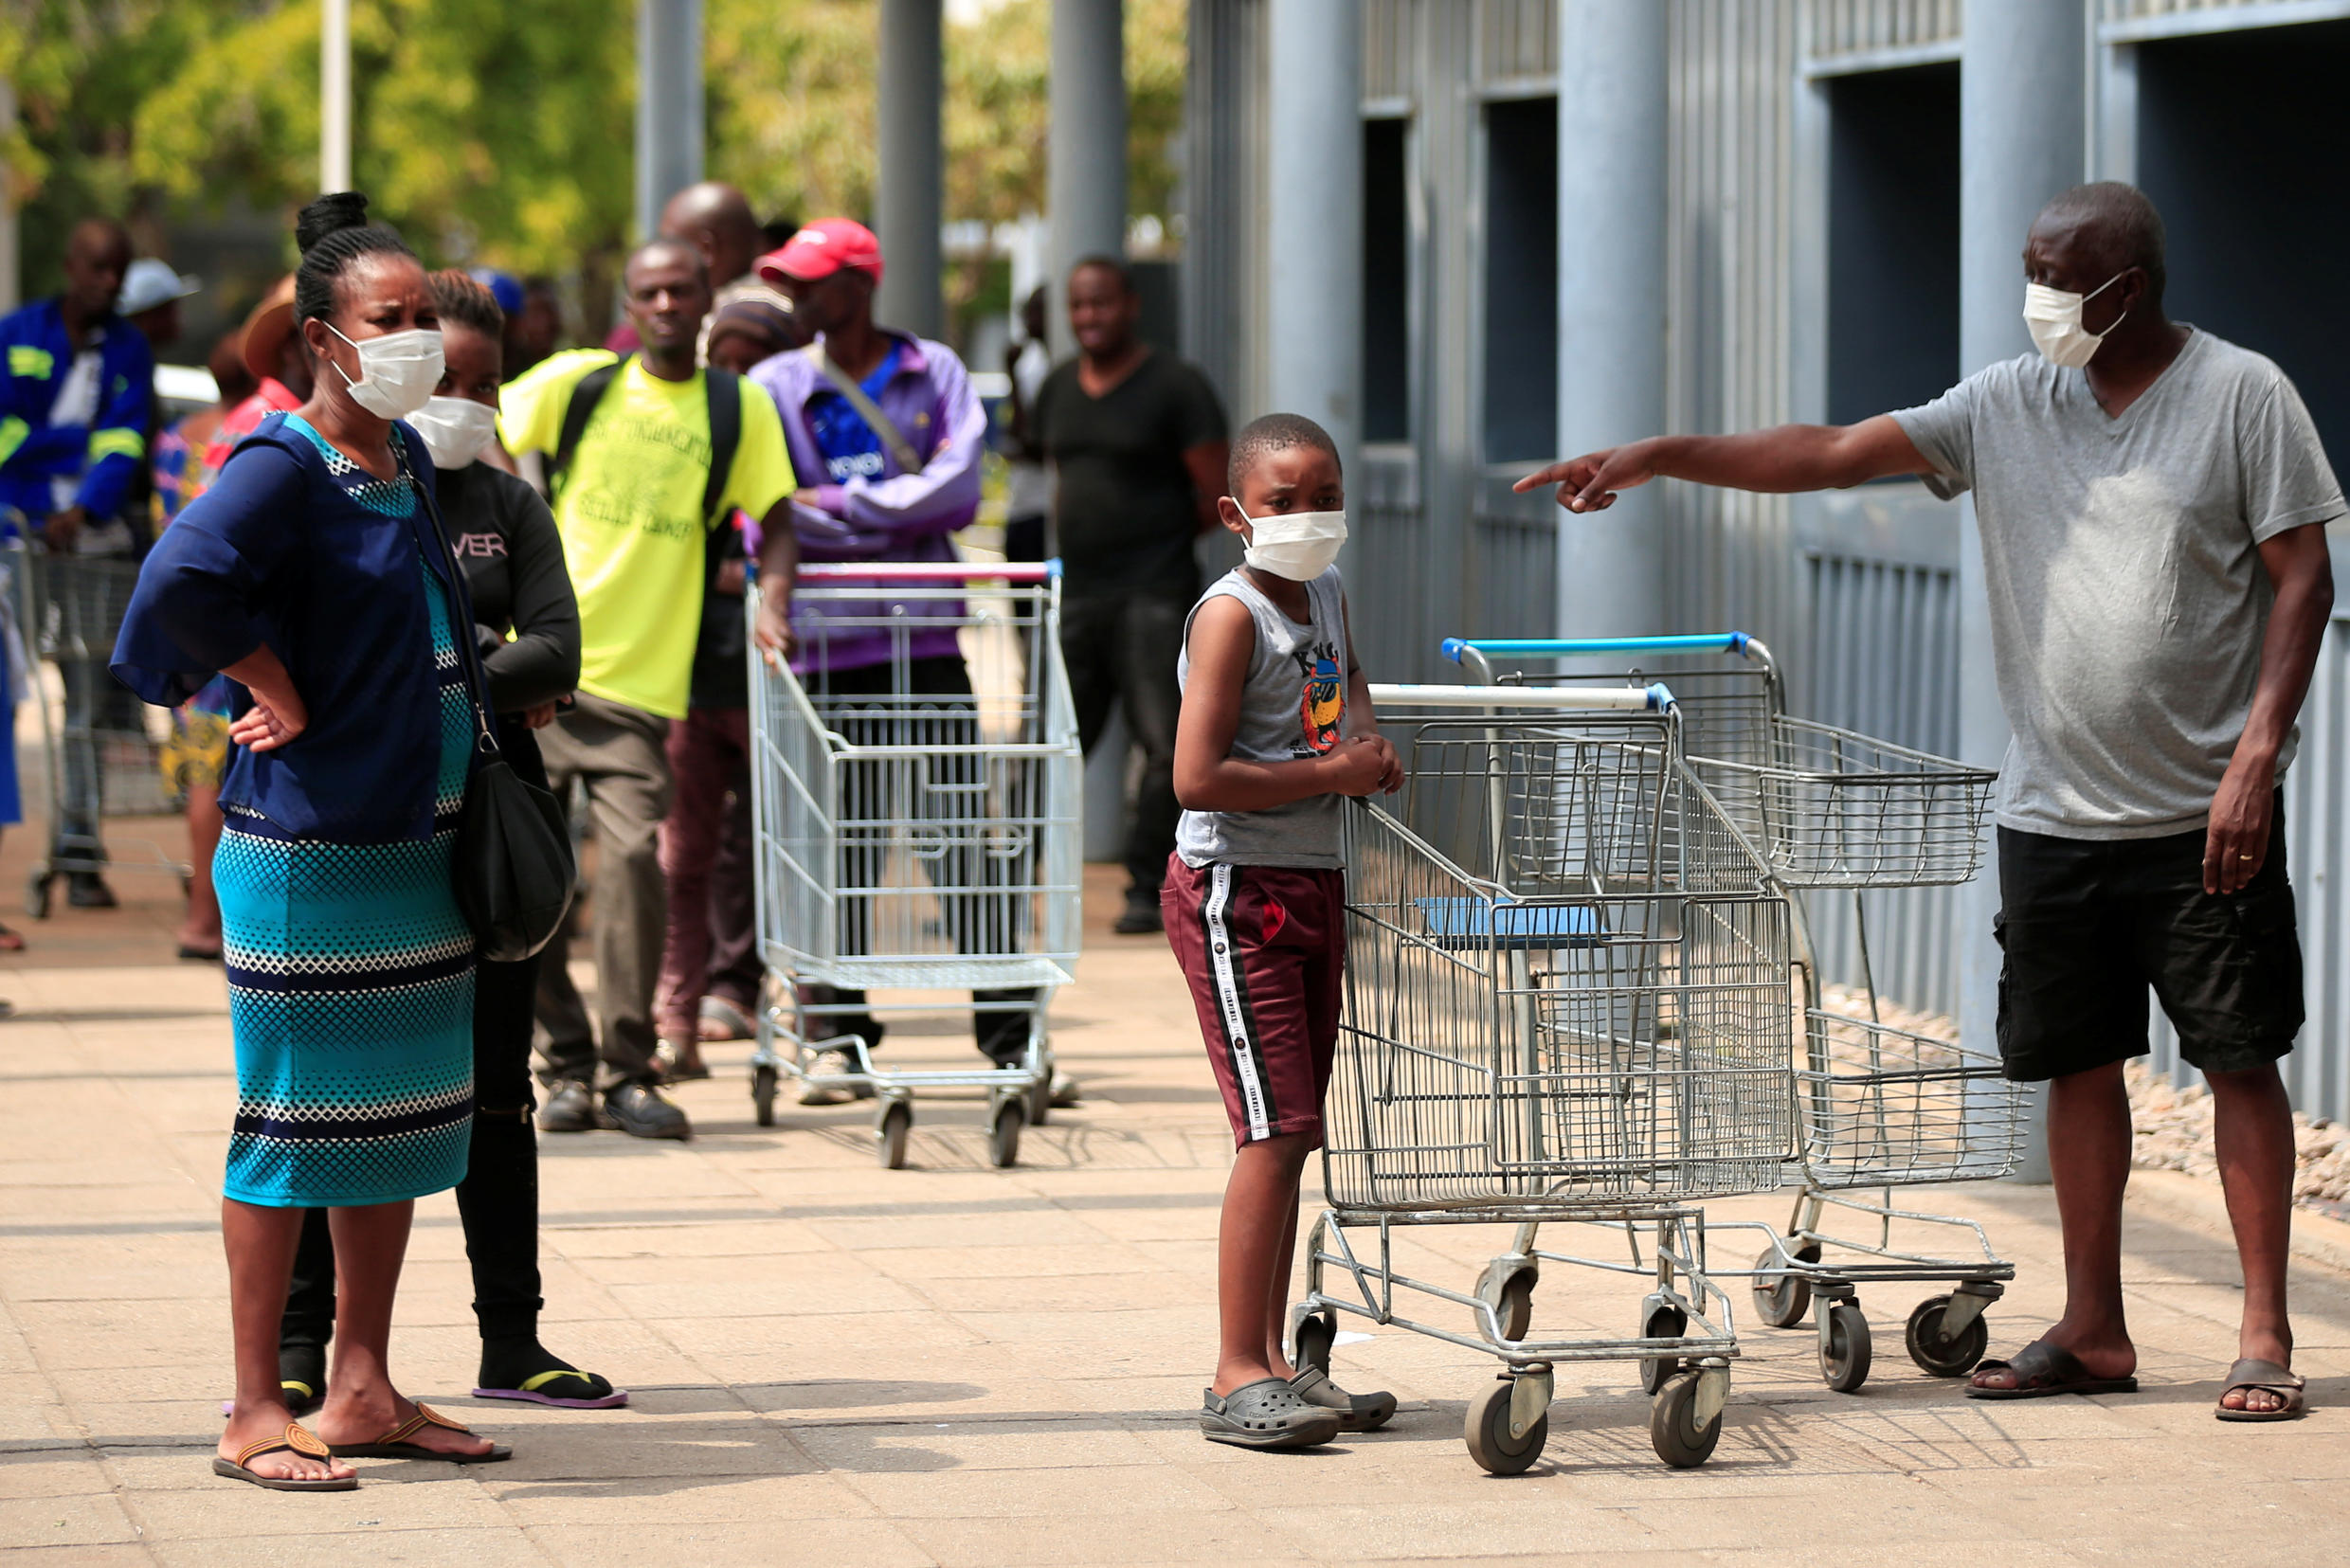 People queue to shop ahead of a nationwide 21-day lockdown called by the government to limit the spread of coronavirus disease (COVID-19) in Harare, Zimbabwe, March 28, 2020.